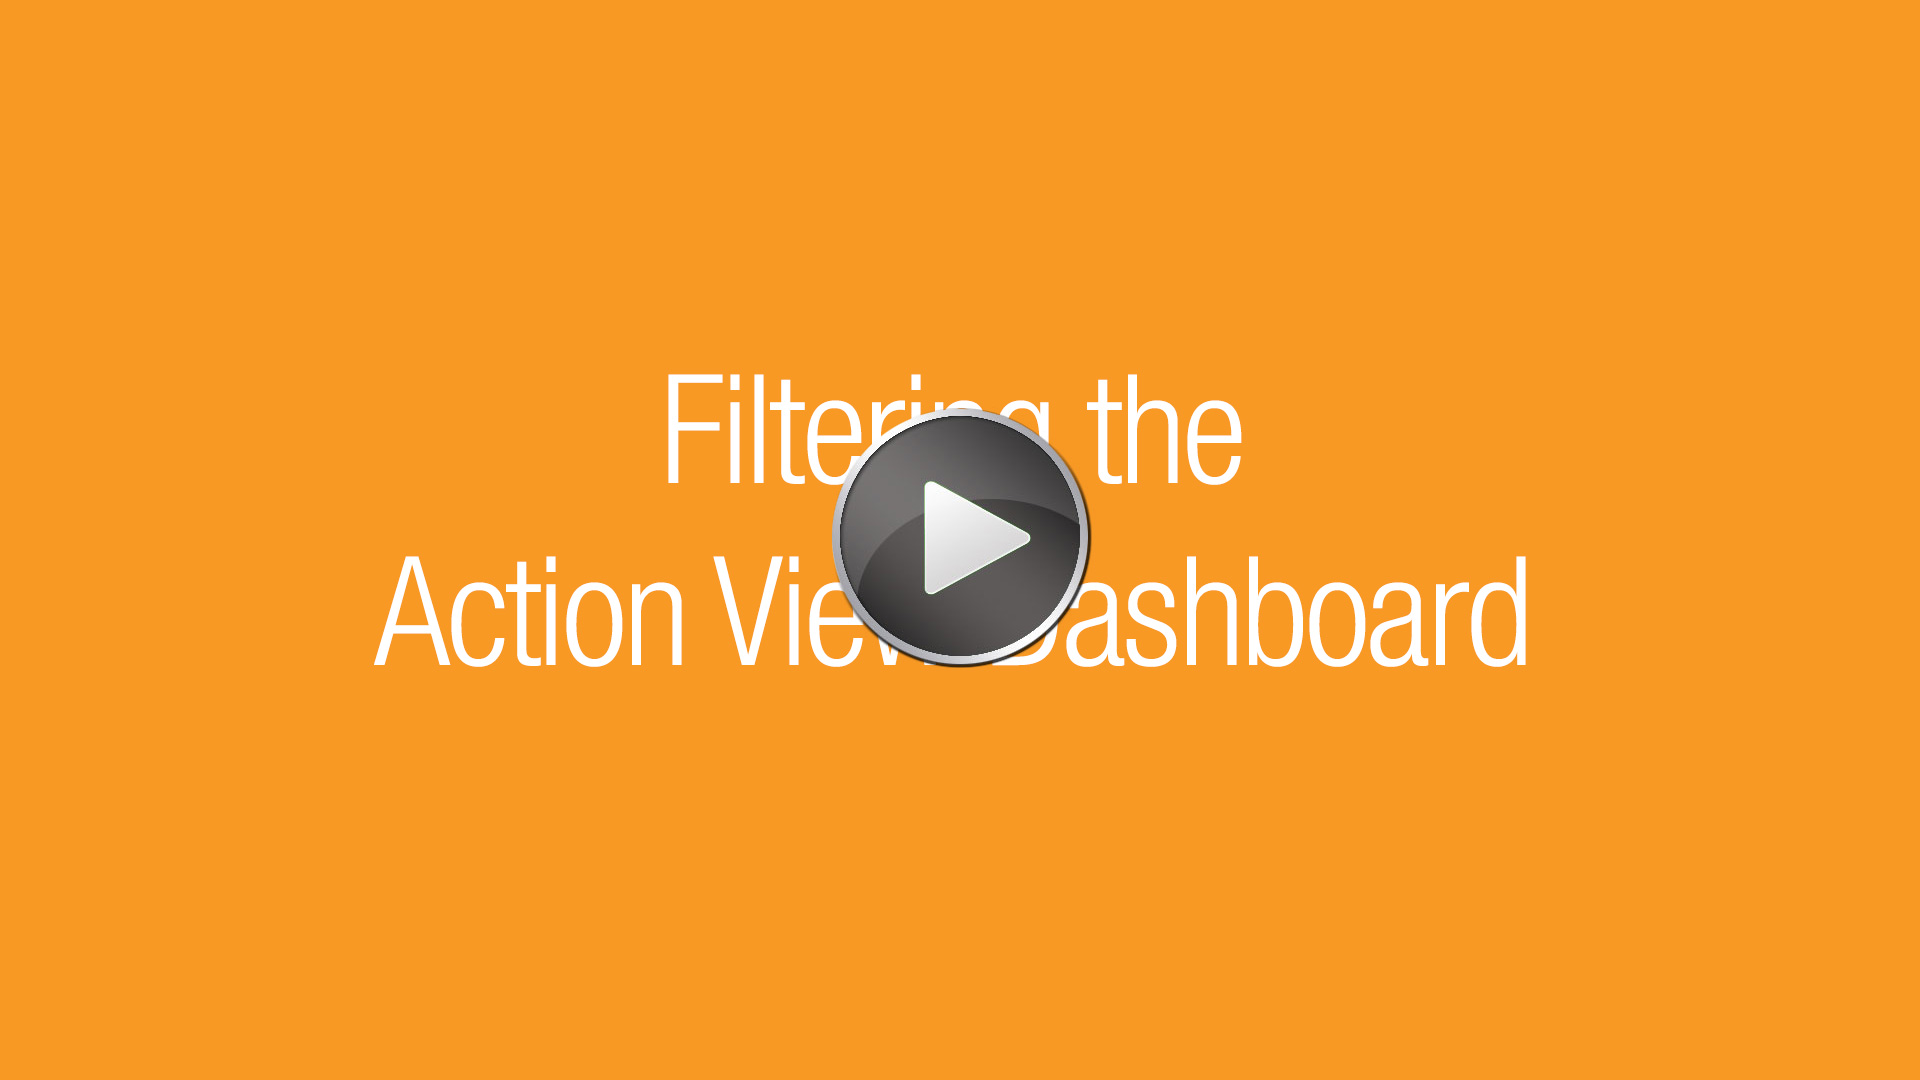 U-Sleep-Filtering the Action View Dashboard